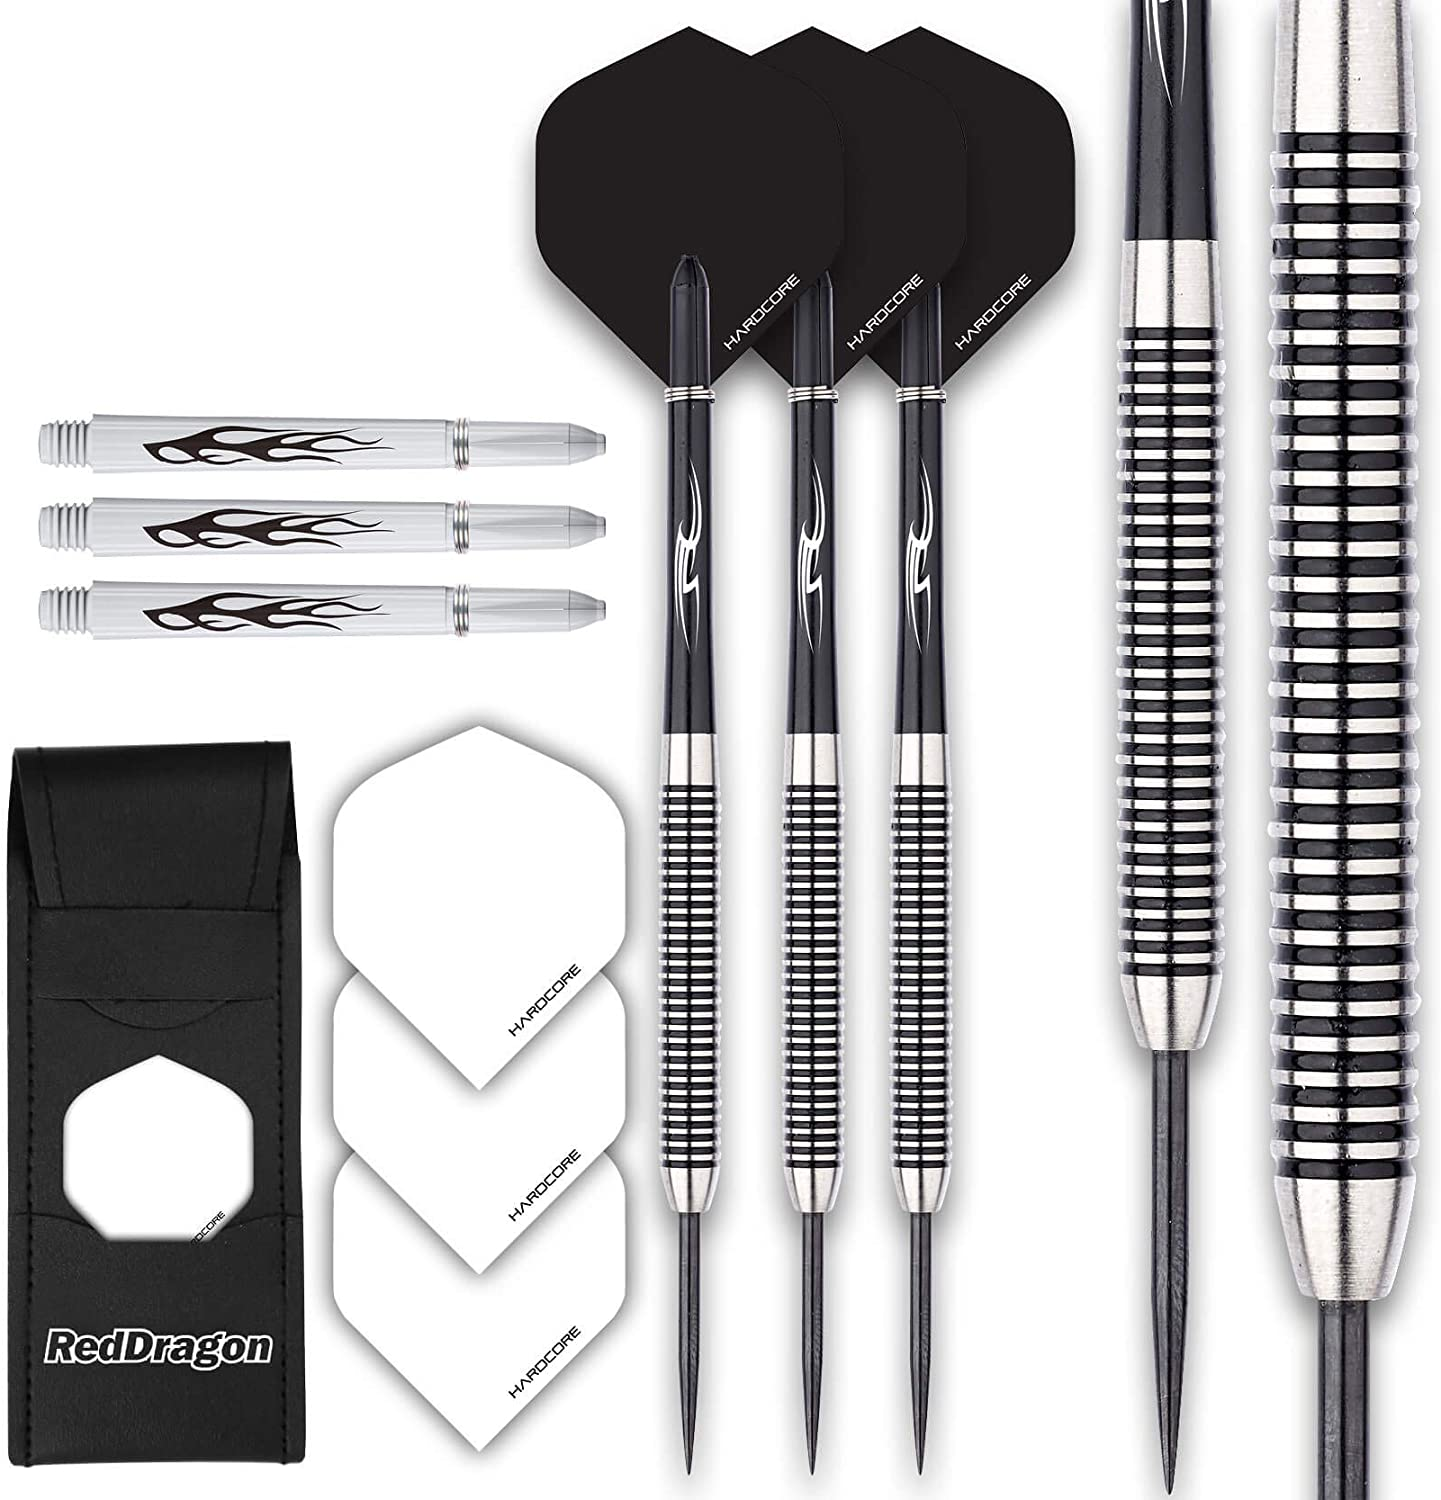 Best Tungsten Darts: What Not to Buy?